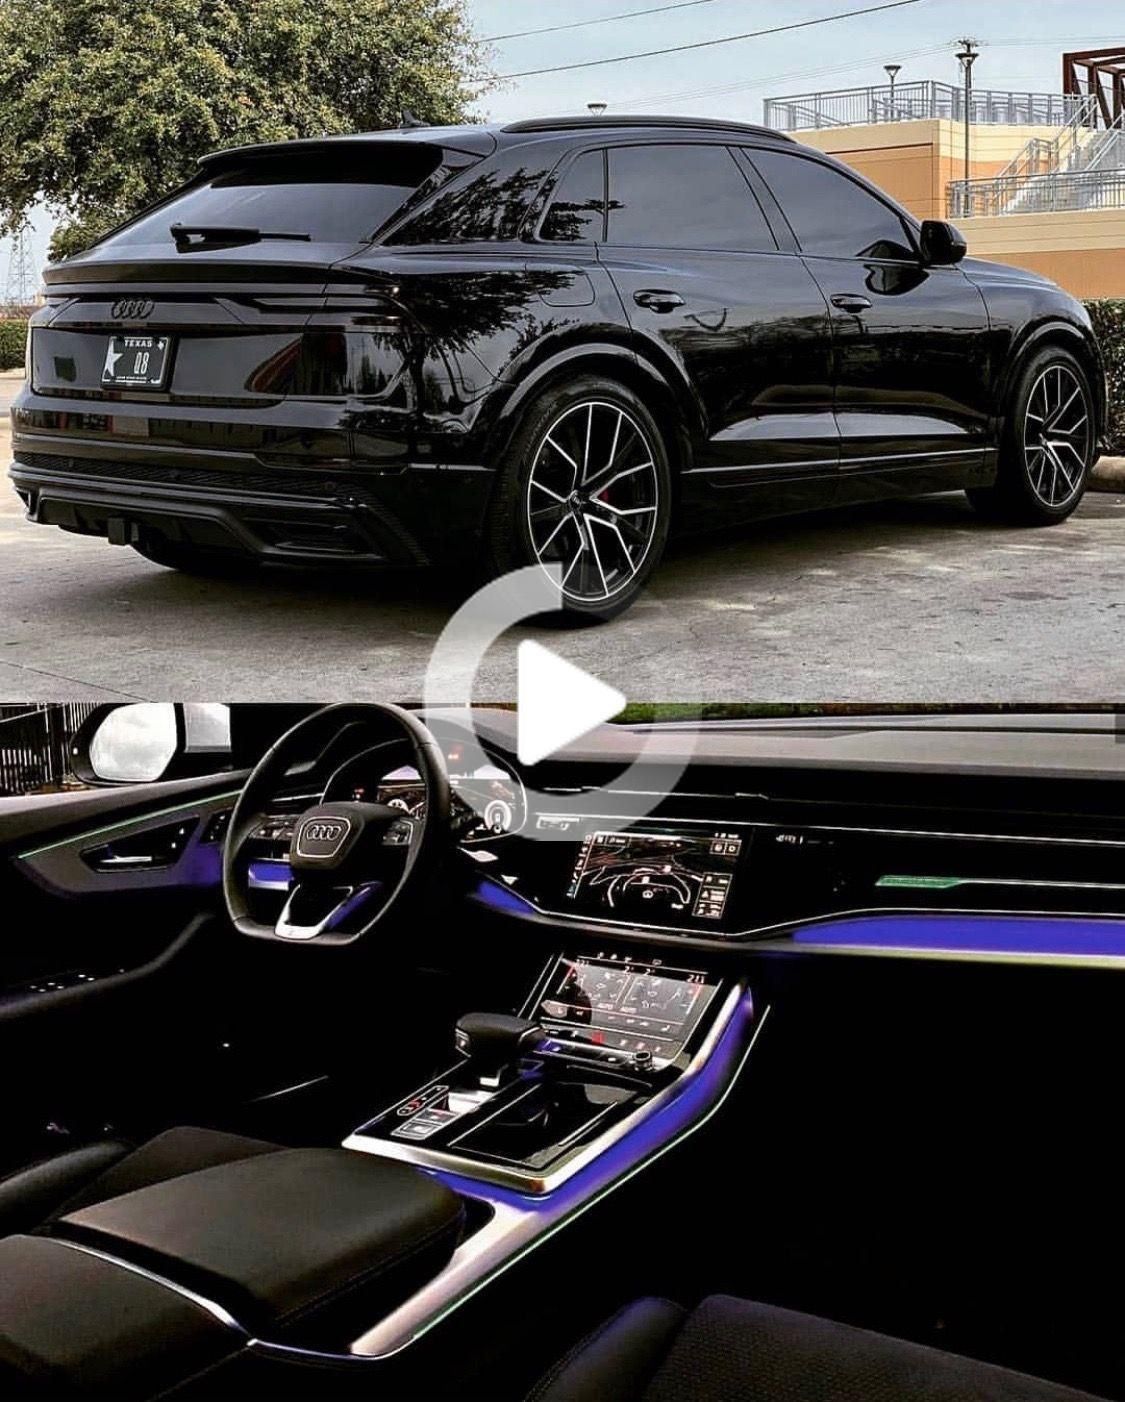 2020 Audi Q8 Blackblack Led Interior Blackblack Interior In 2021 Audi Interior Luxury Cars Audi Best Luxury Cars